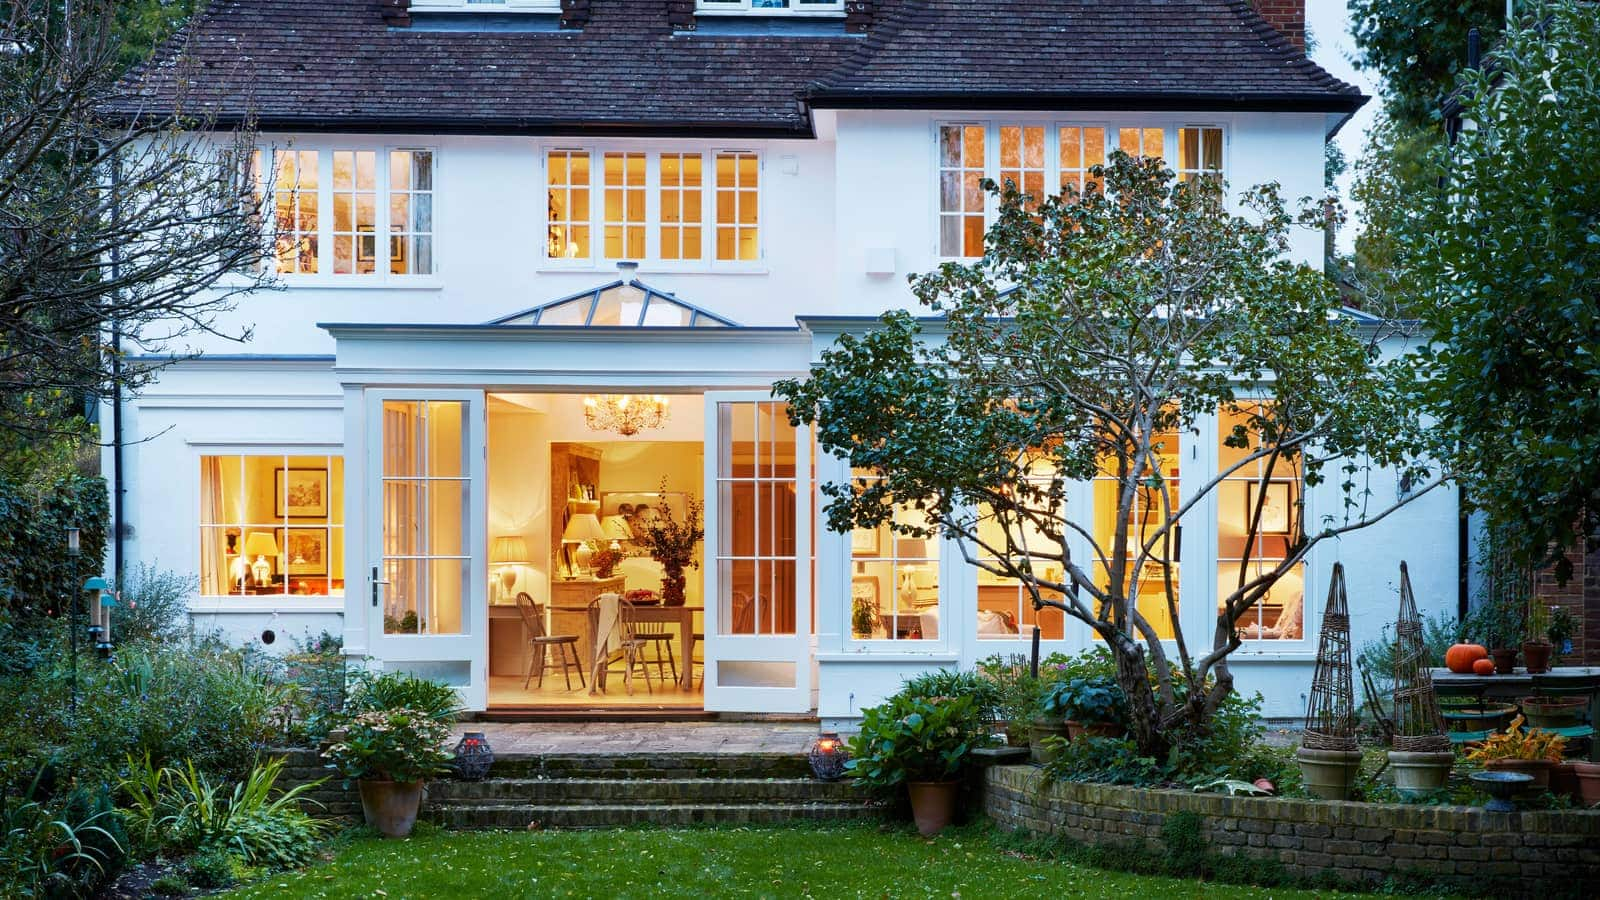 Exterior view of orangery with french doors open on to the garden at dusk